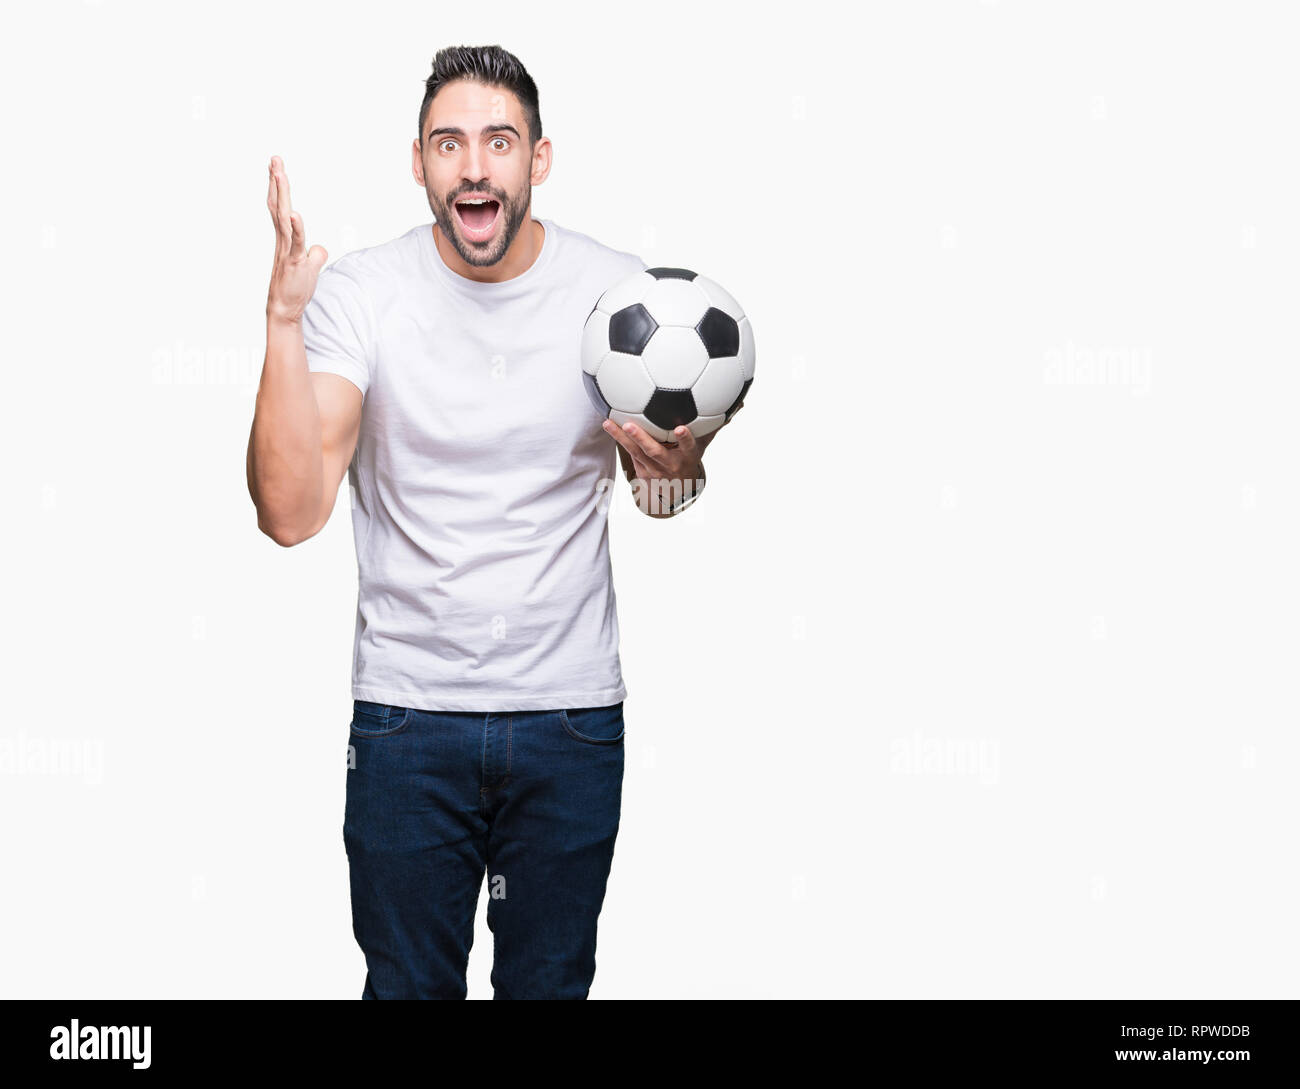 2e0777f4f Young man holding soccer football ball over isolated background very happy  and excited, winner expression